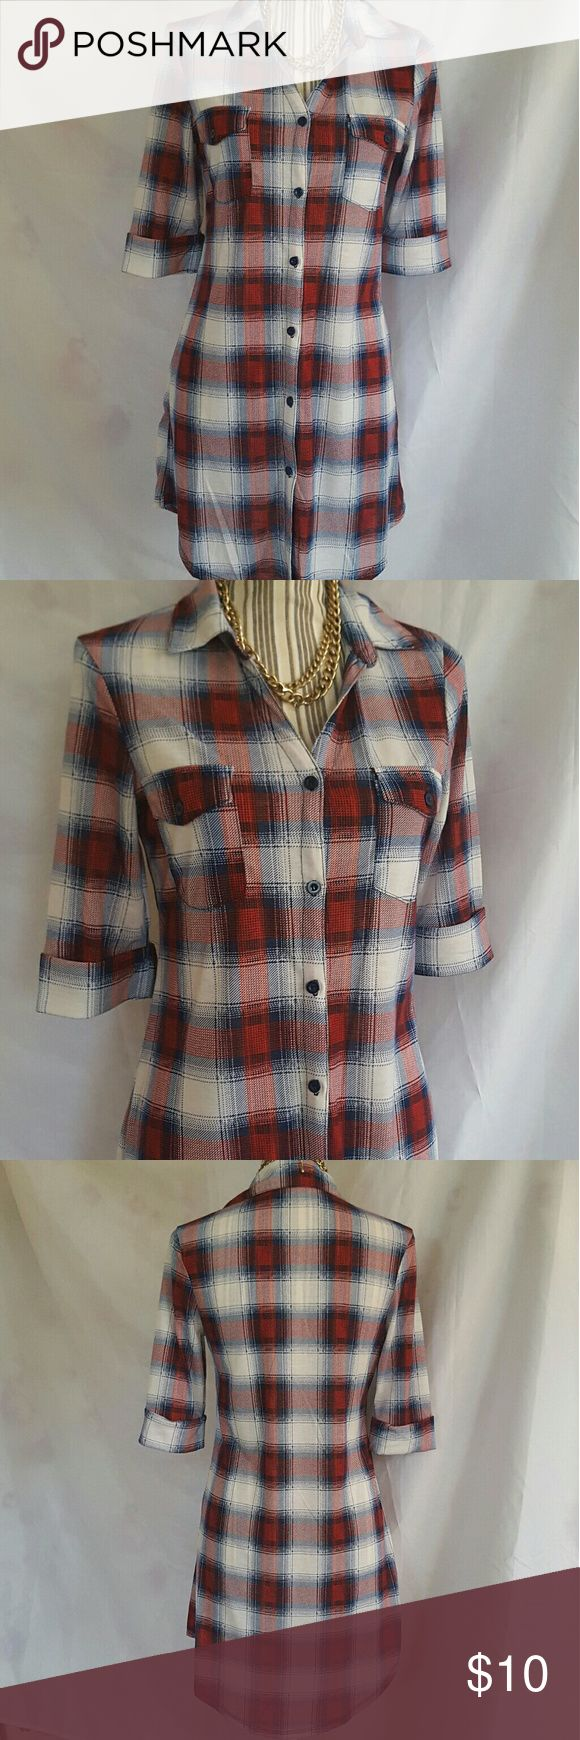 Plaid Shirt Dress NWOT from New Look Red, navy and white plaid shirt dress made from soft cotton blend that has a slight stretch. Traditional shirt hem, two breast pockets, and cuffed sleeves. Looks fantastic with leggings and boots too!! Never worn. New Look Dresses